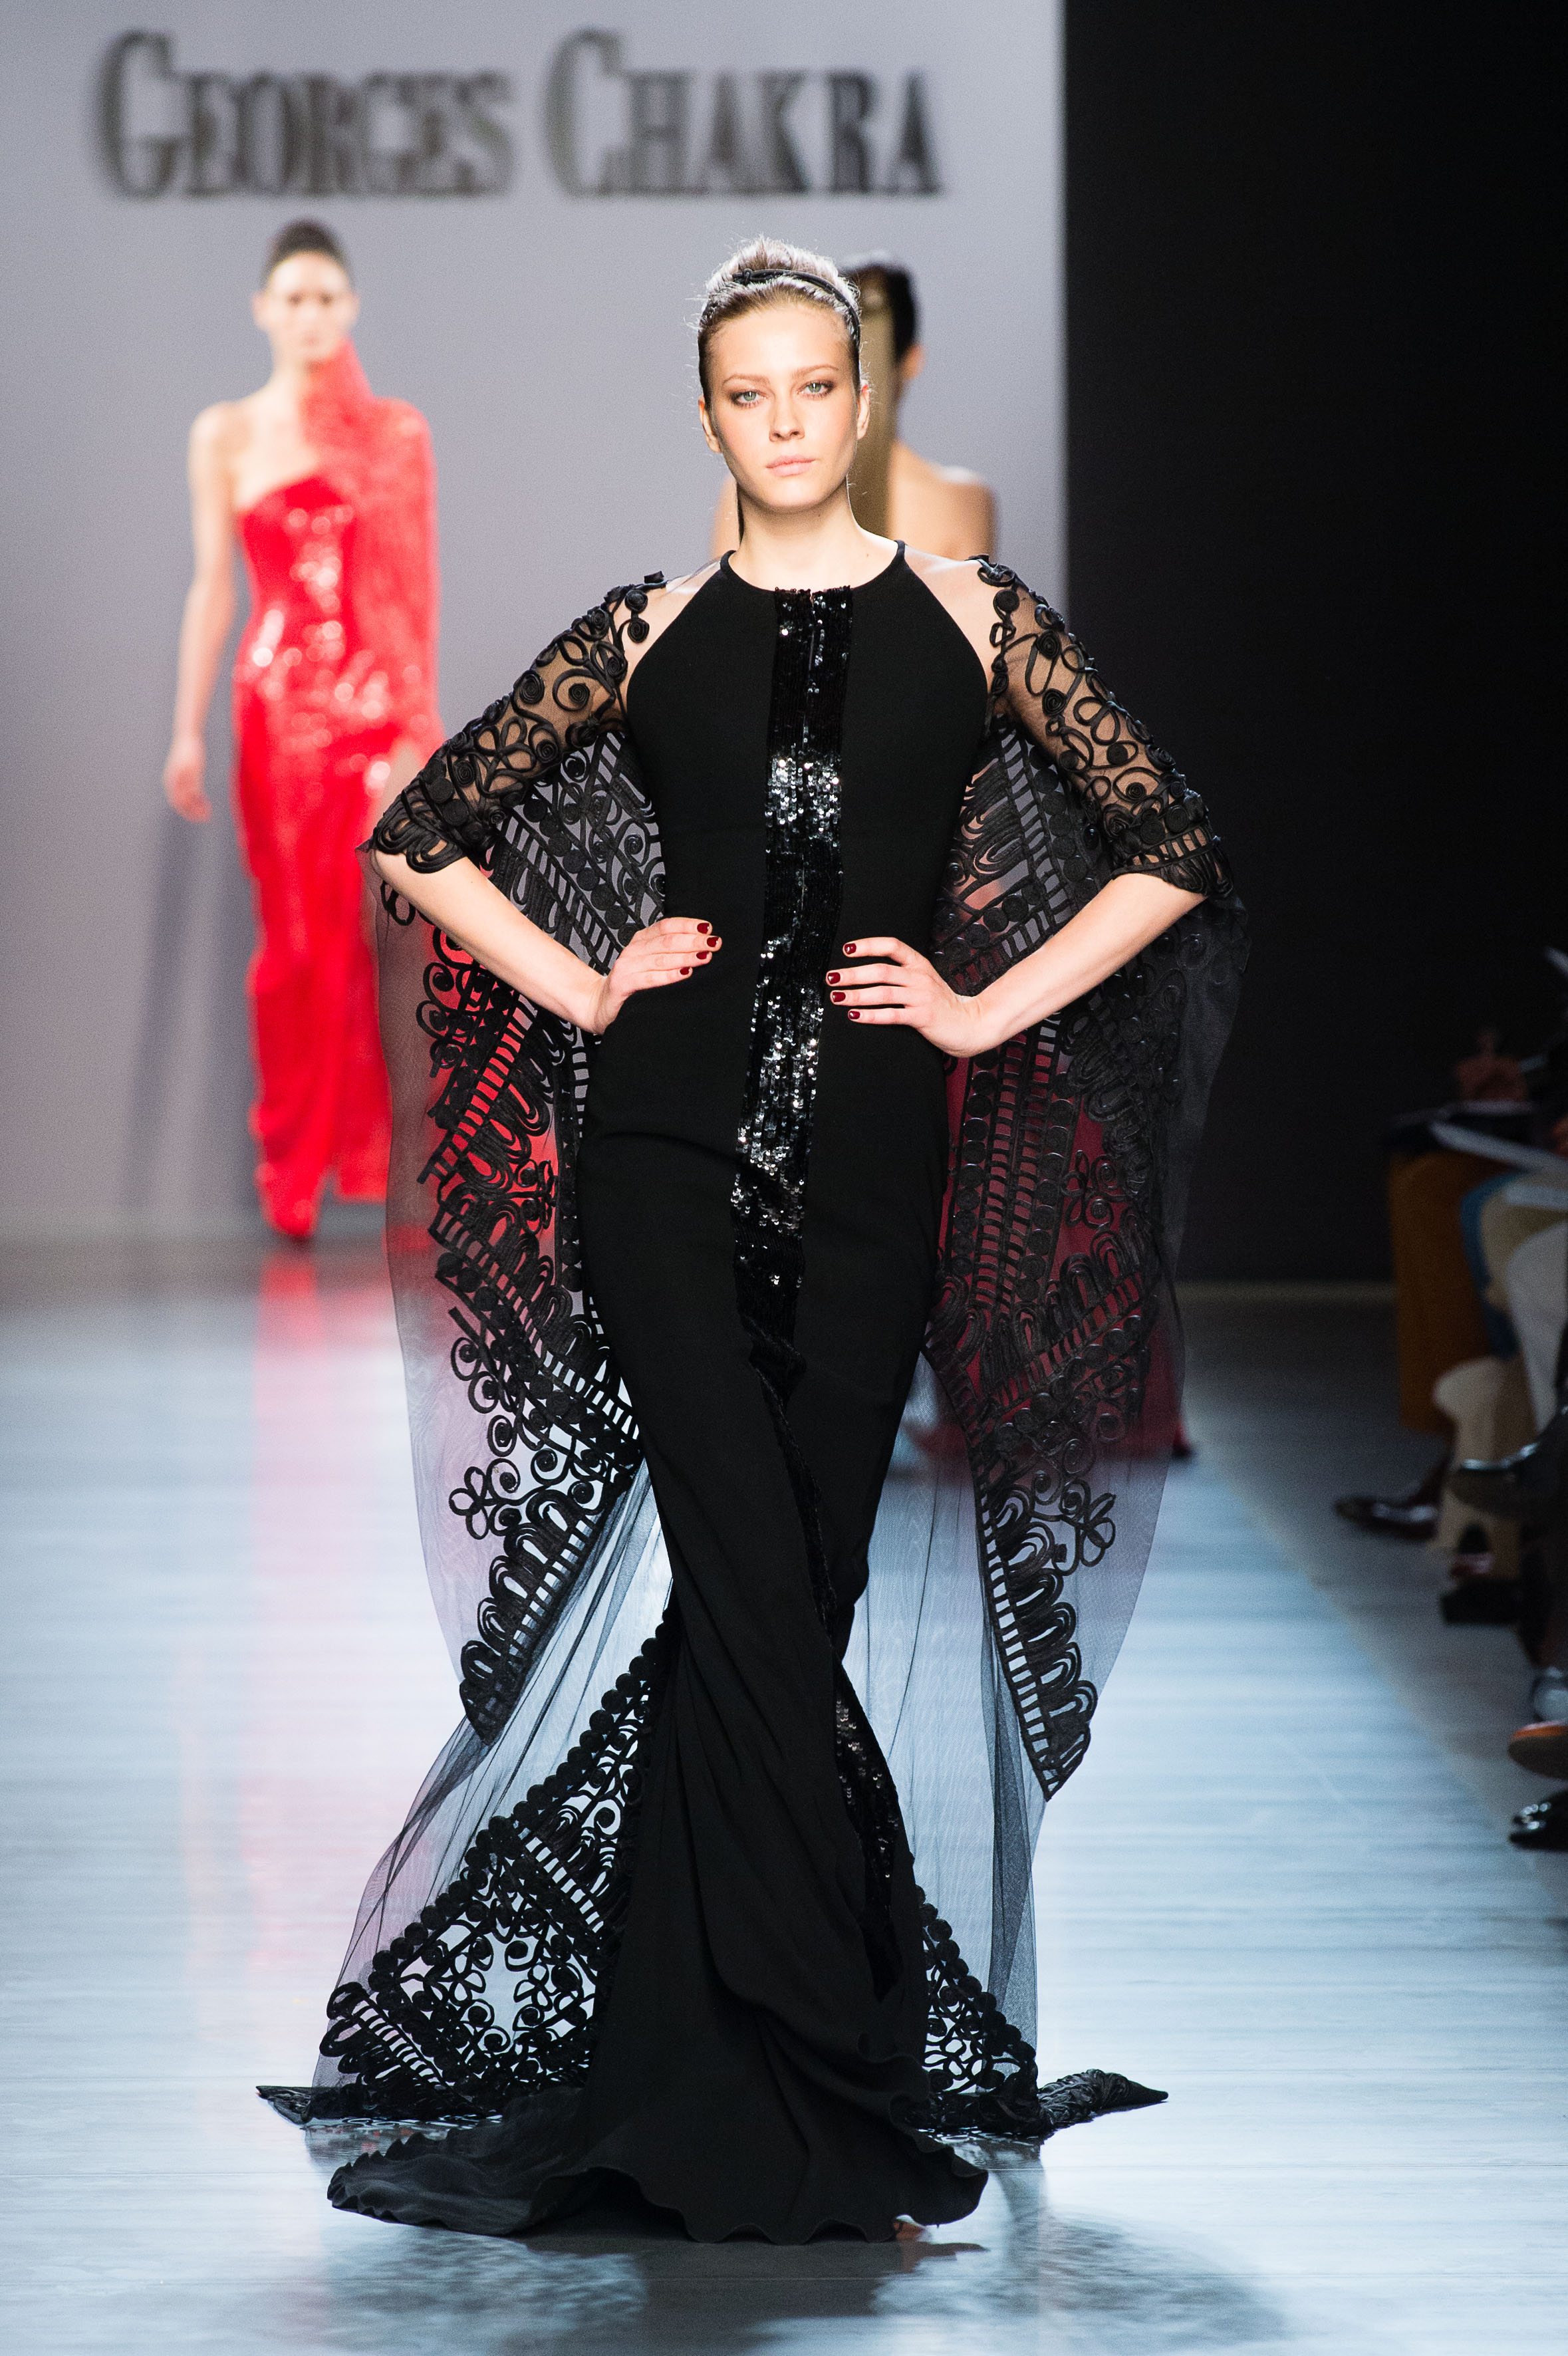 Paris, July 2014 – The fall-winter 2014-2015 Couture show of Georges Chakra  was held on the 9th of July at the Palais de Tokyo during Paris Fashion week . 3f1099e0794